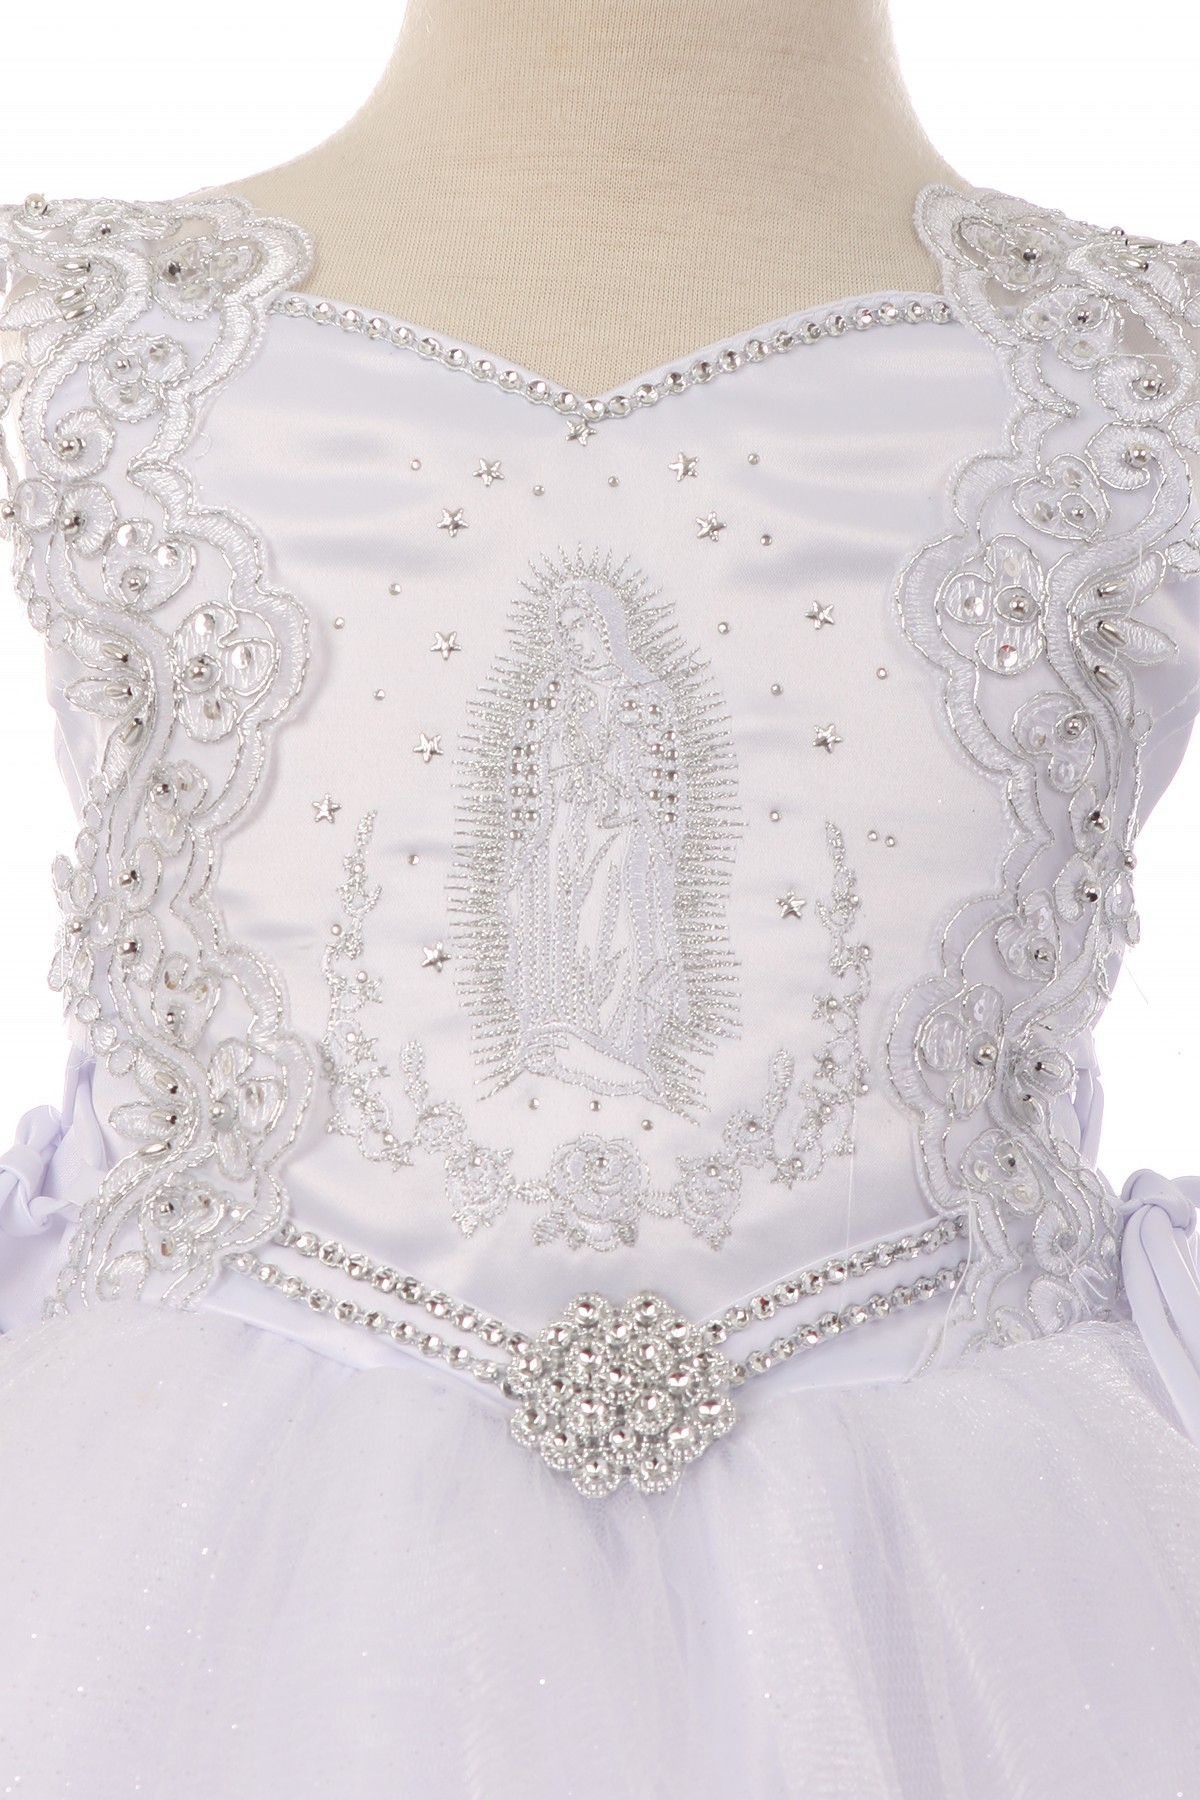 Virgin Mary Baptism Dress